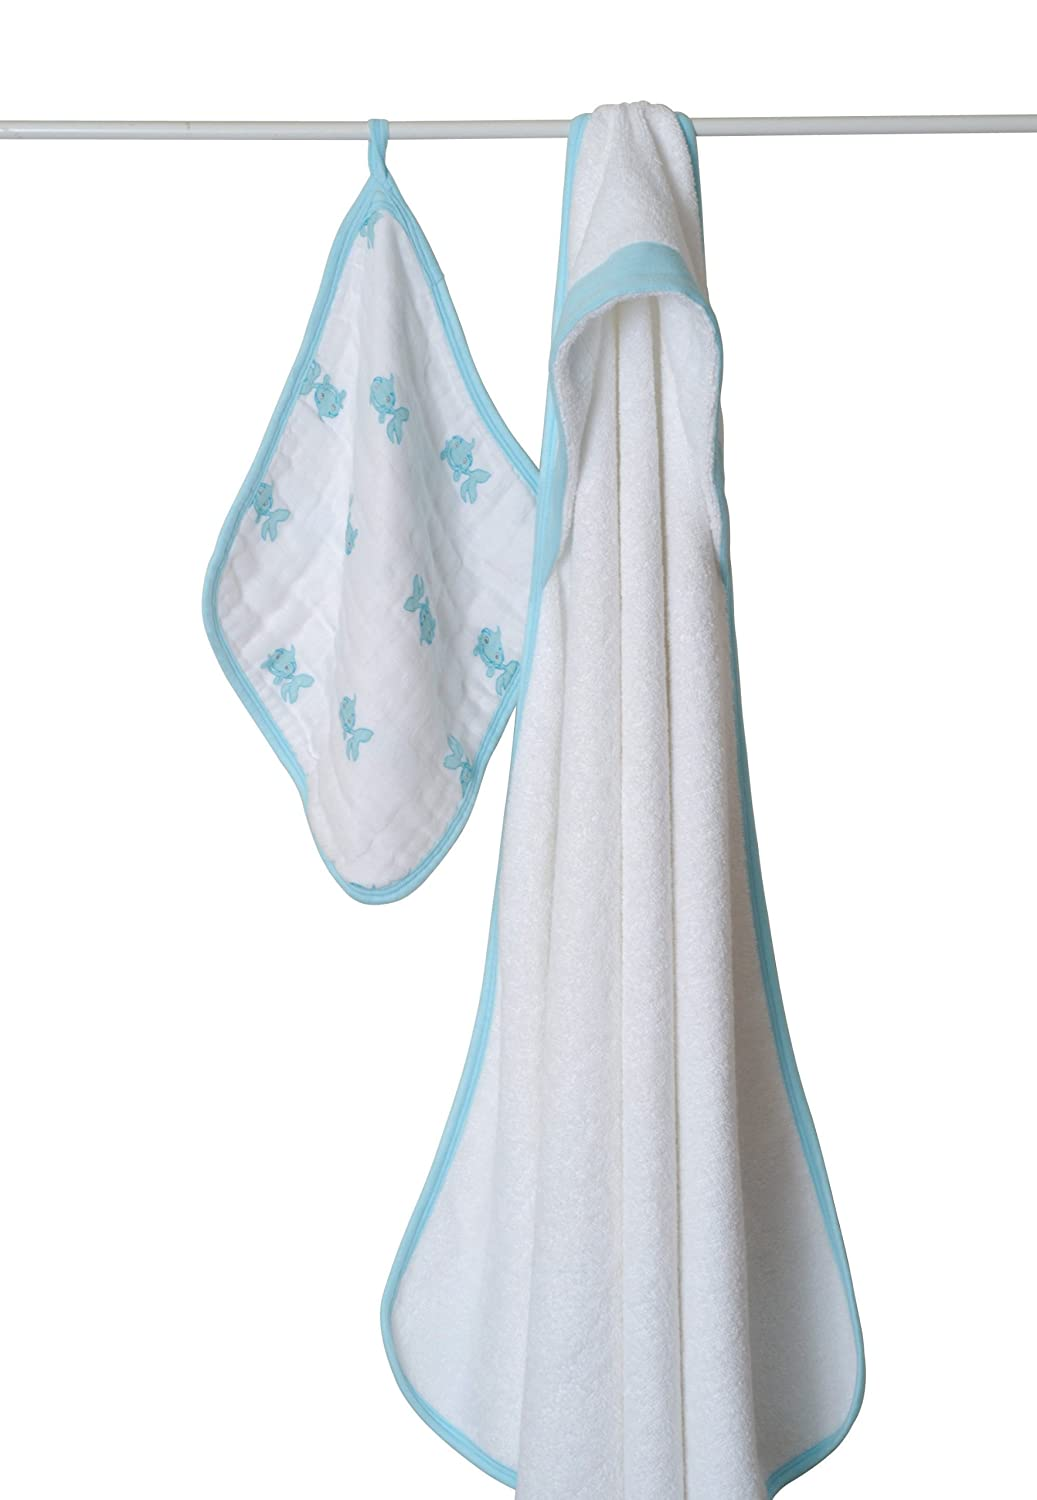 Aden and Anais Heartbreaker  hooded Towel /& washcloth sets  New